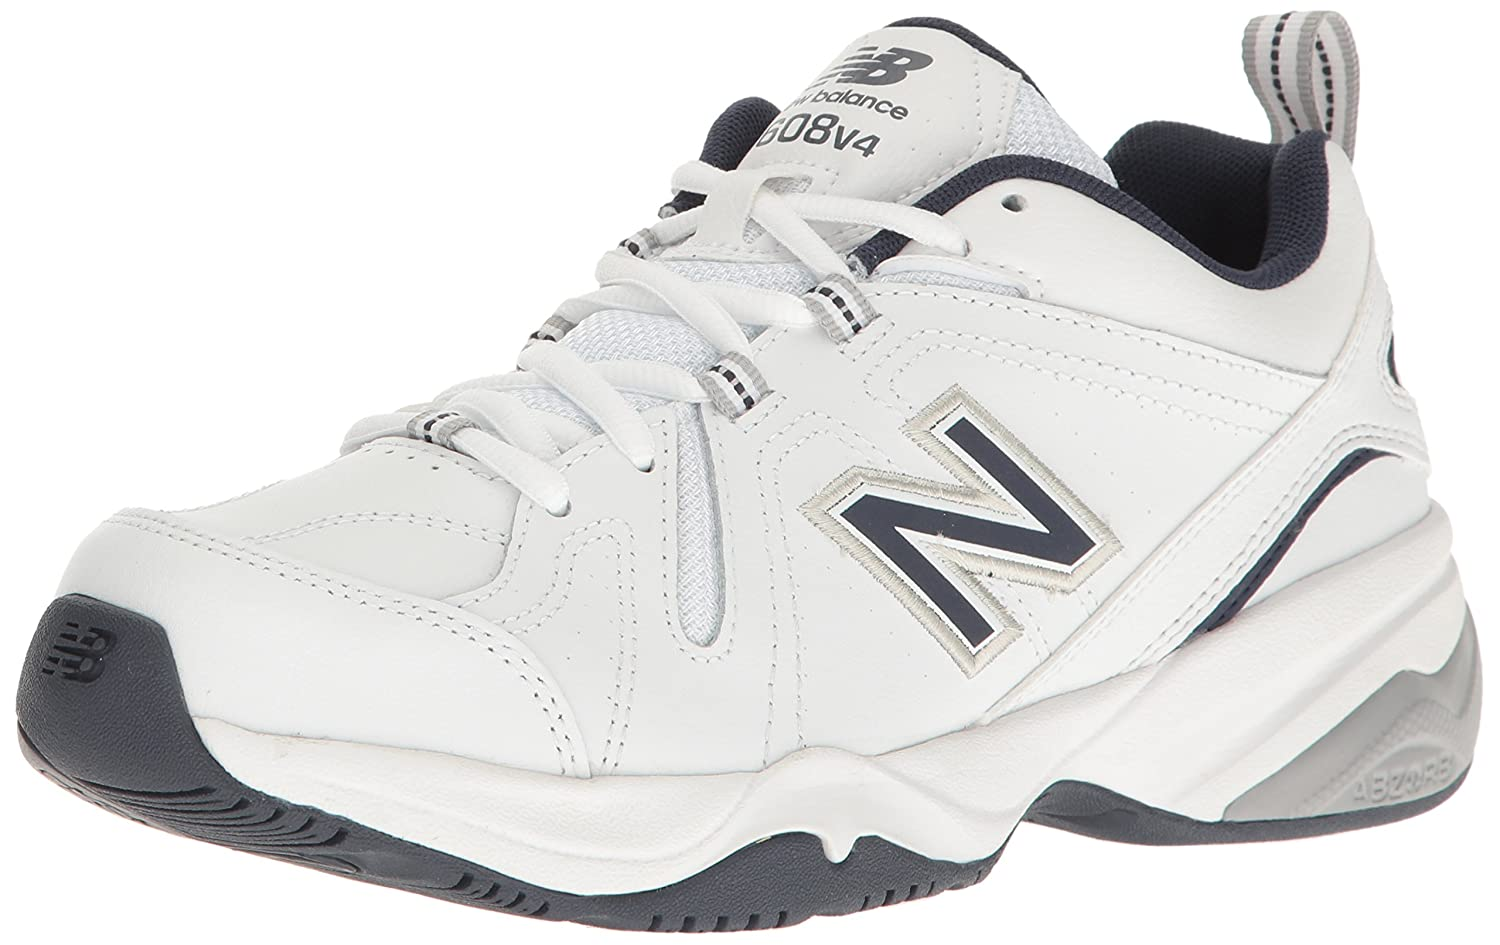 New Balance Men's MX608v4 Training Shoe B00IYBD48C 12.5 D(M) US|Navy/White